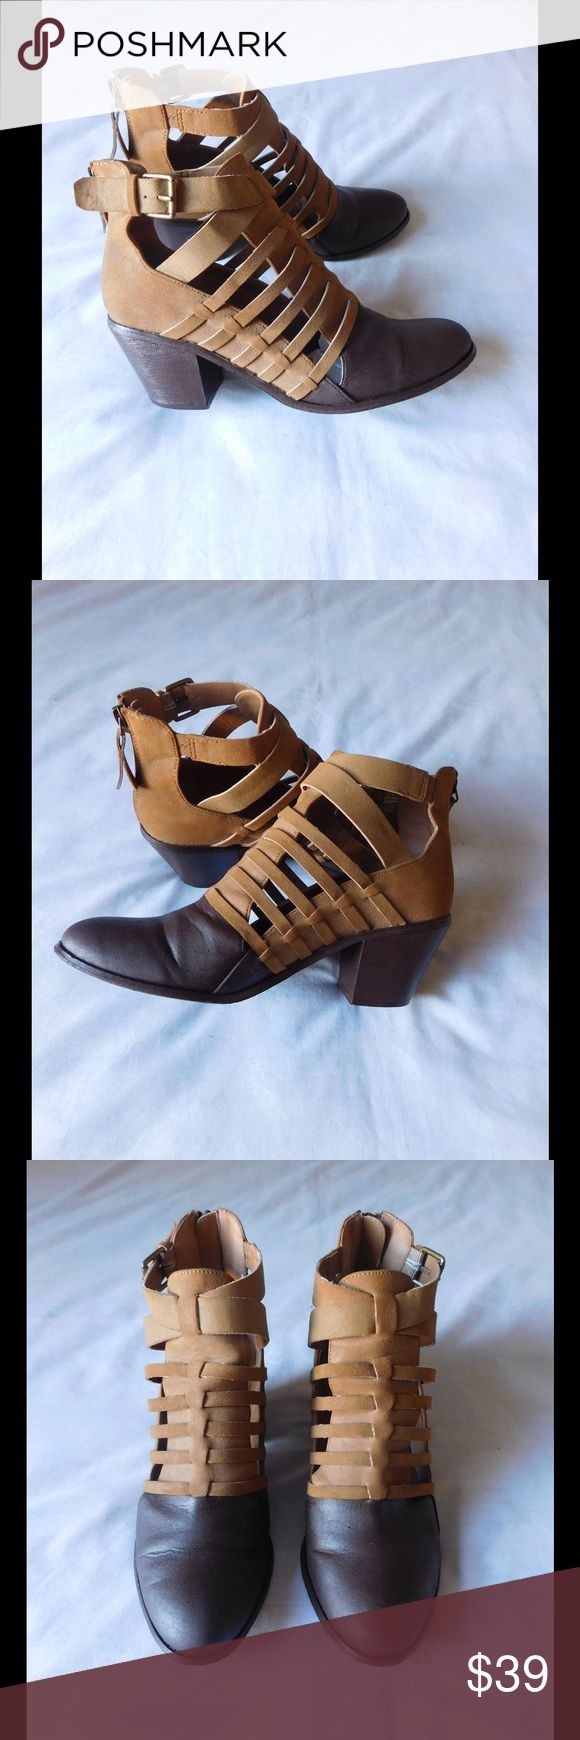 Chic Tan/Brown Strappy Heeled Booties  W/Buckles Almost New. This pair of booties are amazing and adorable. Soft and comfy material. Gorgeous colors and exclusive style. Customize brown color. Size 9.0 - Negotiable Price. G by Guess Shoes Ankle Boots & Booties